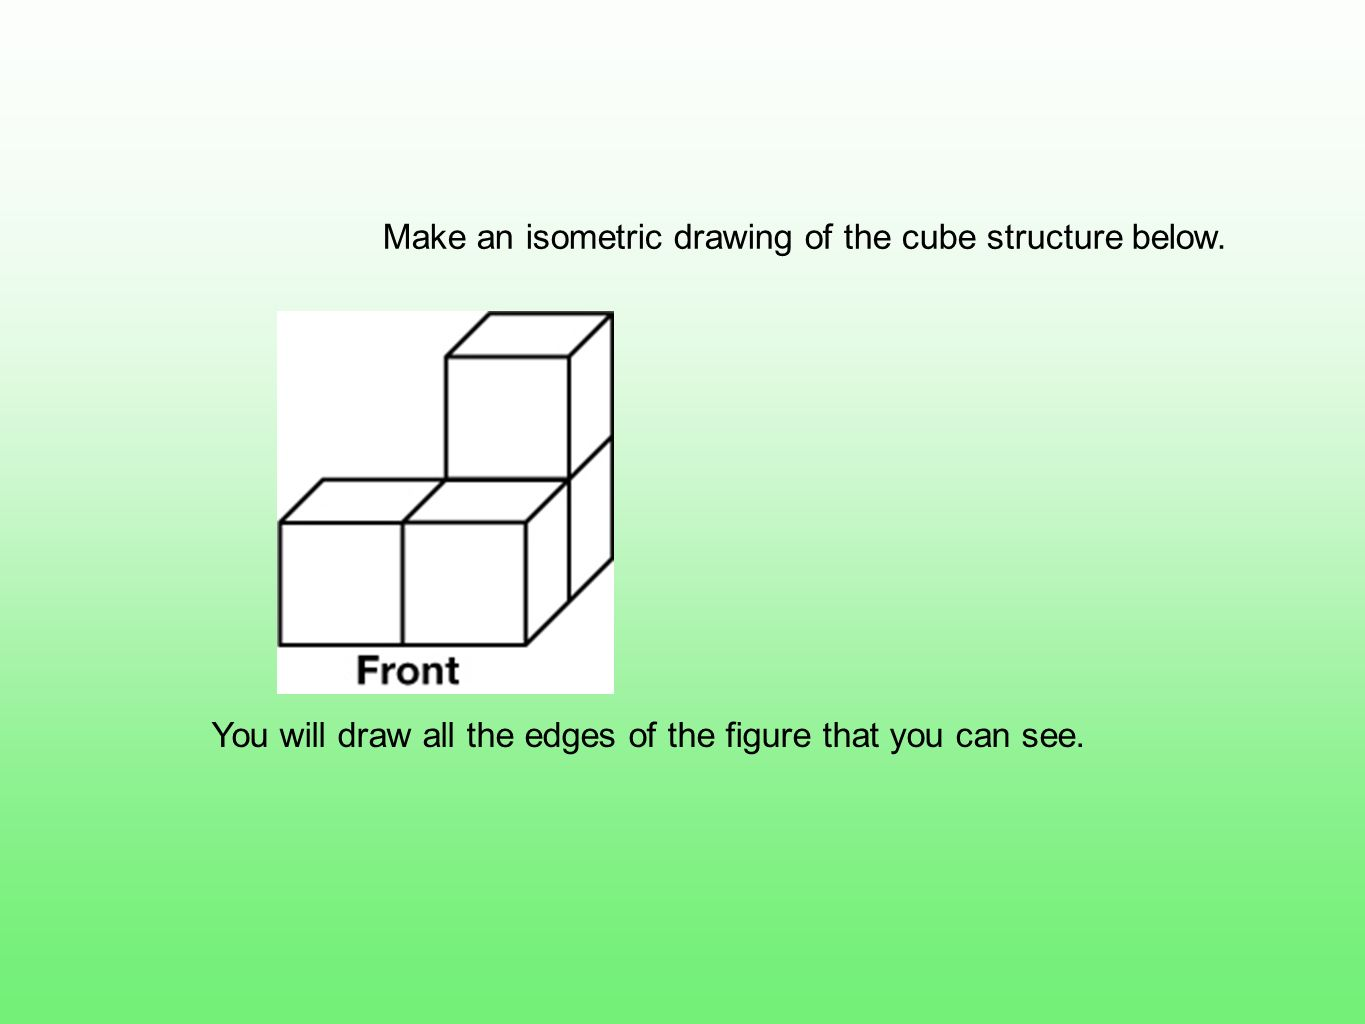 Make an isometric drawing of the cube structure below.